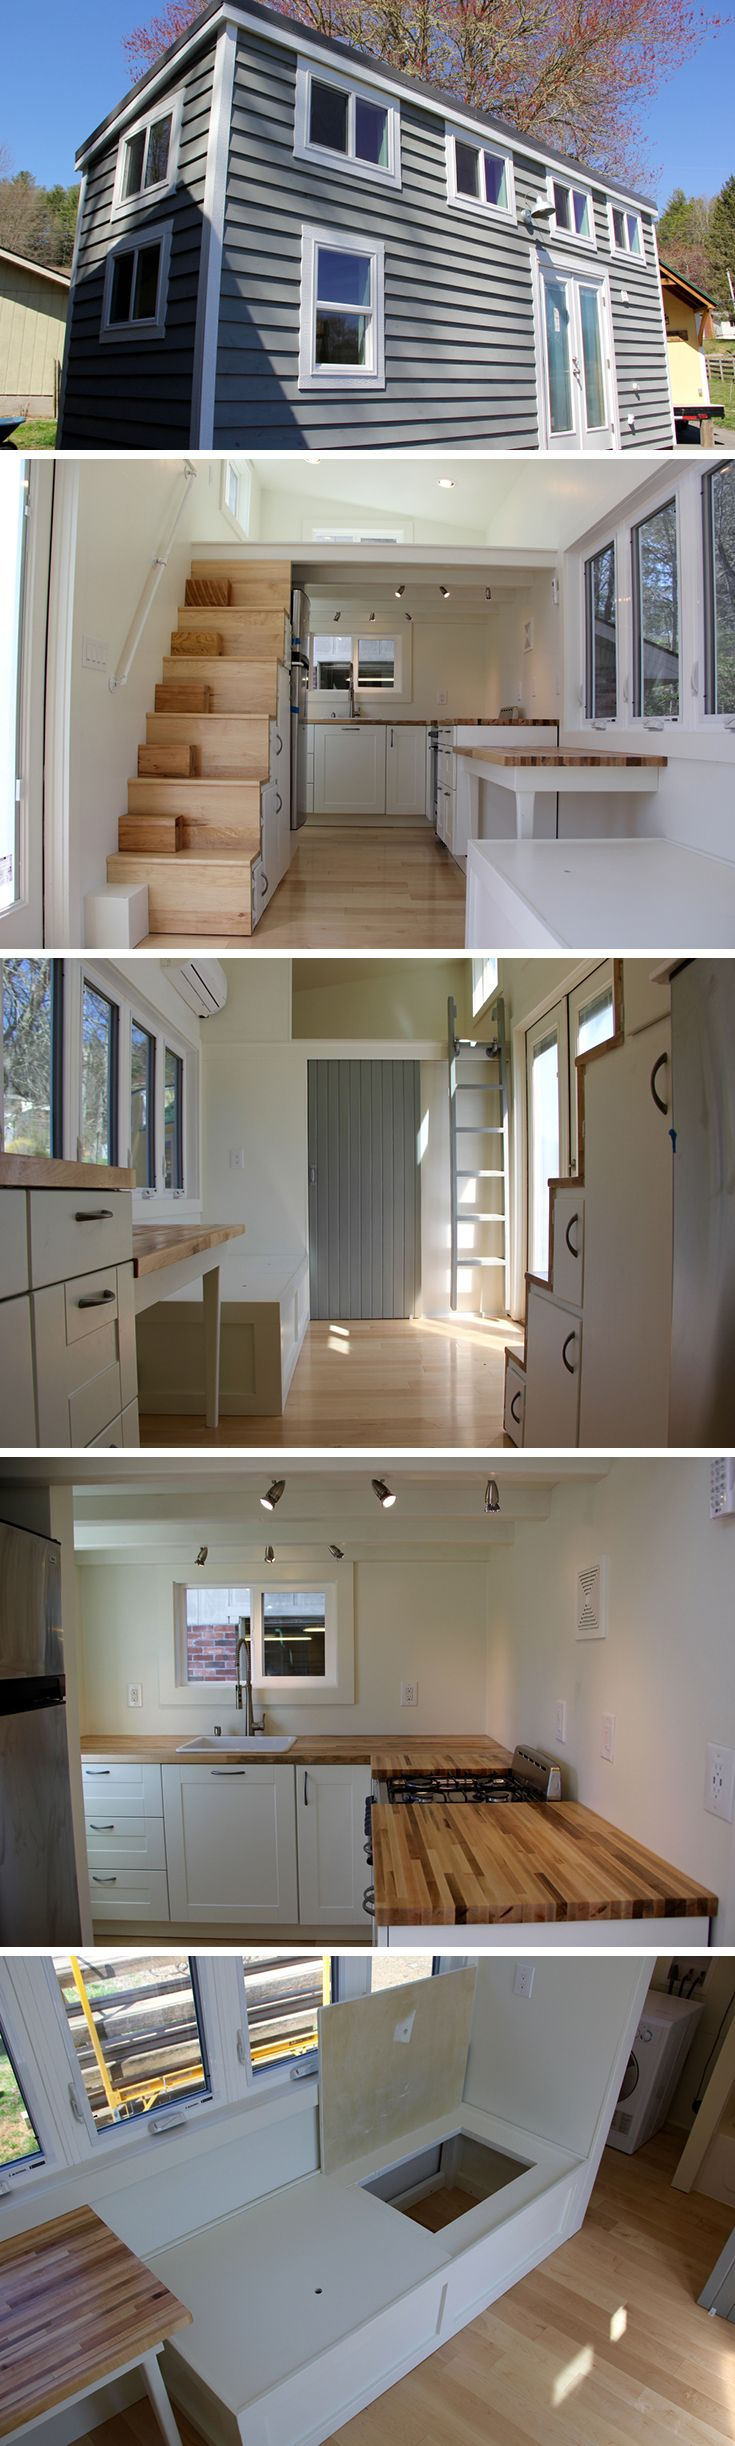 The Chickadee tiny house on wheels is an 8′ × 24′ design by Brevard Tiny House.  The model features two lofts, stair storage, and a bathtub.  The abundant stair storage uses slide-out shelving and has room for an apartment-size refrigerator.